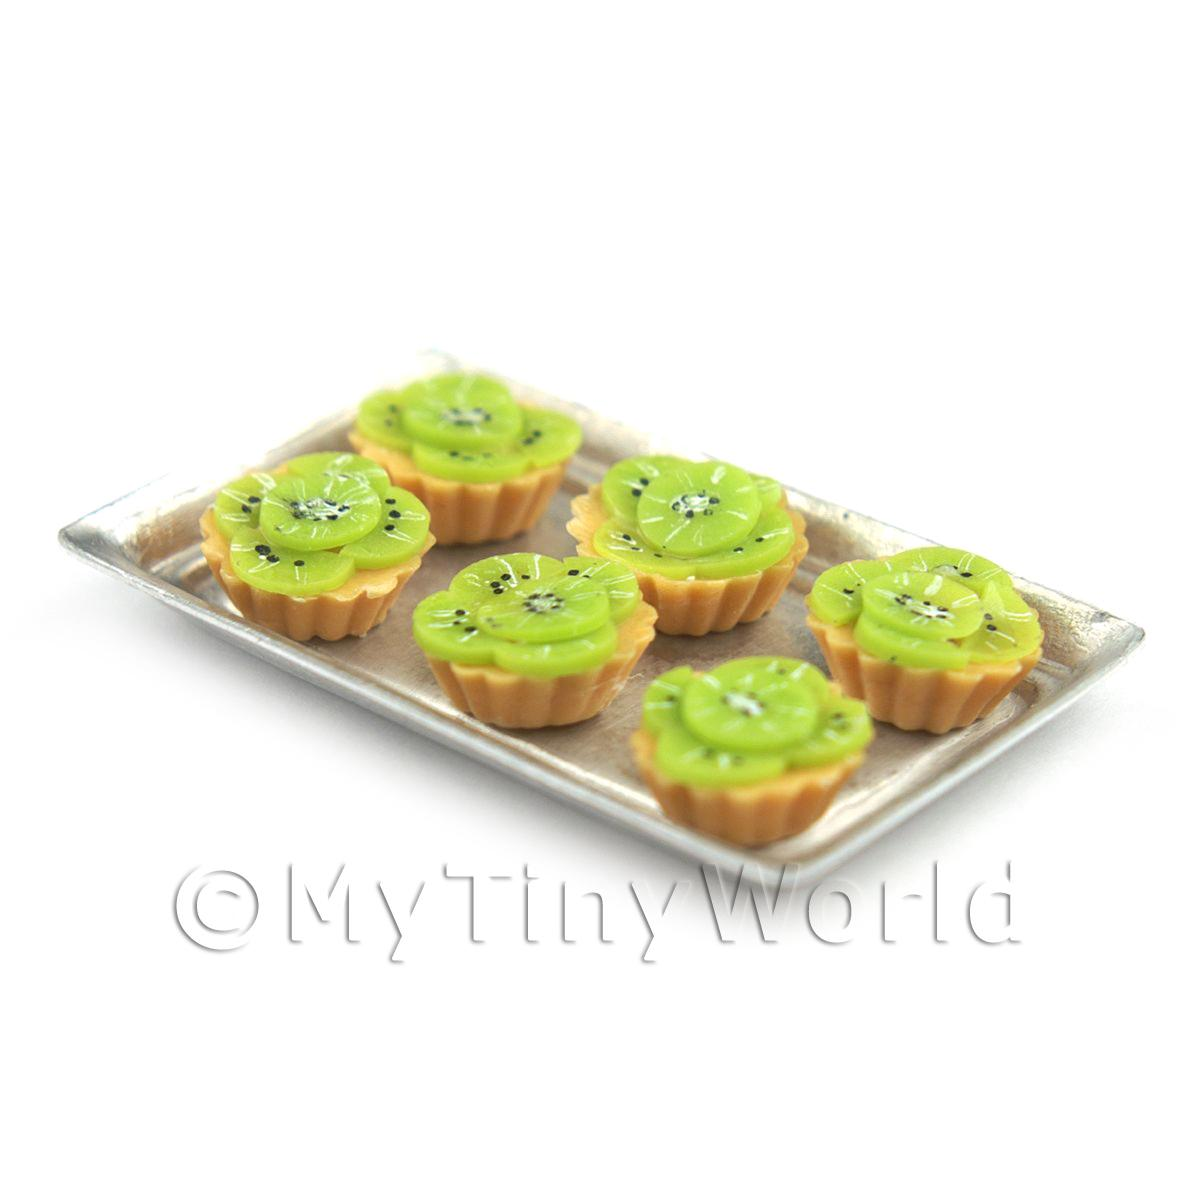 6 Loose Dolls House Miniature  Sliced Kiwi Tarts on a Tray